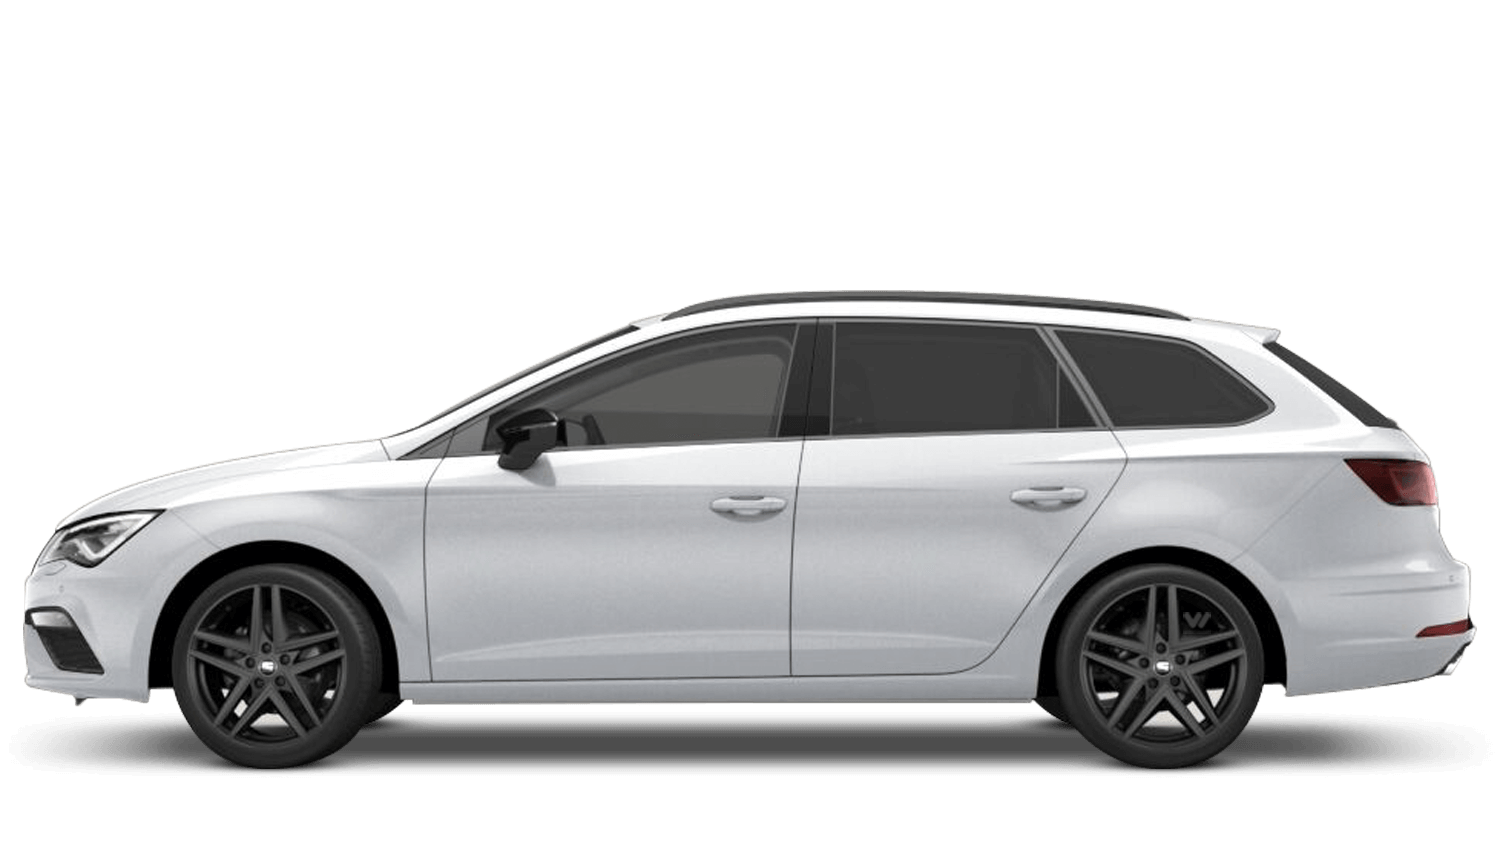 Nevada White (Metallic) SEAT Leon Estate